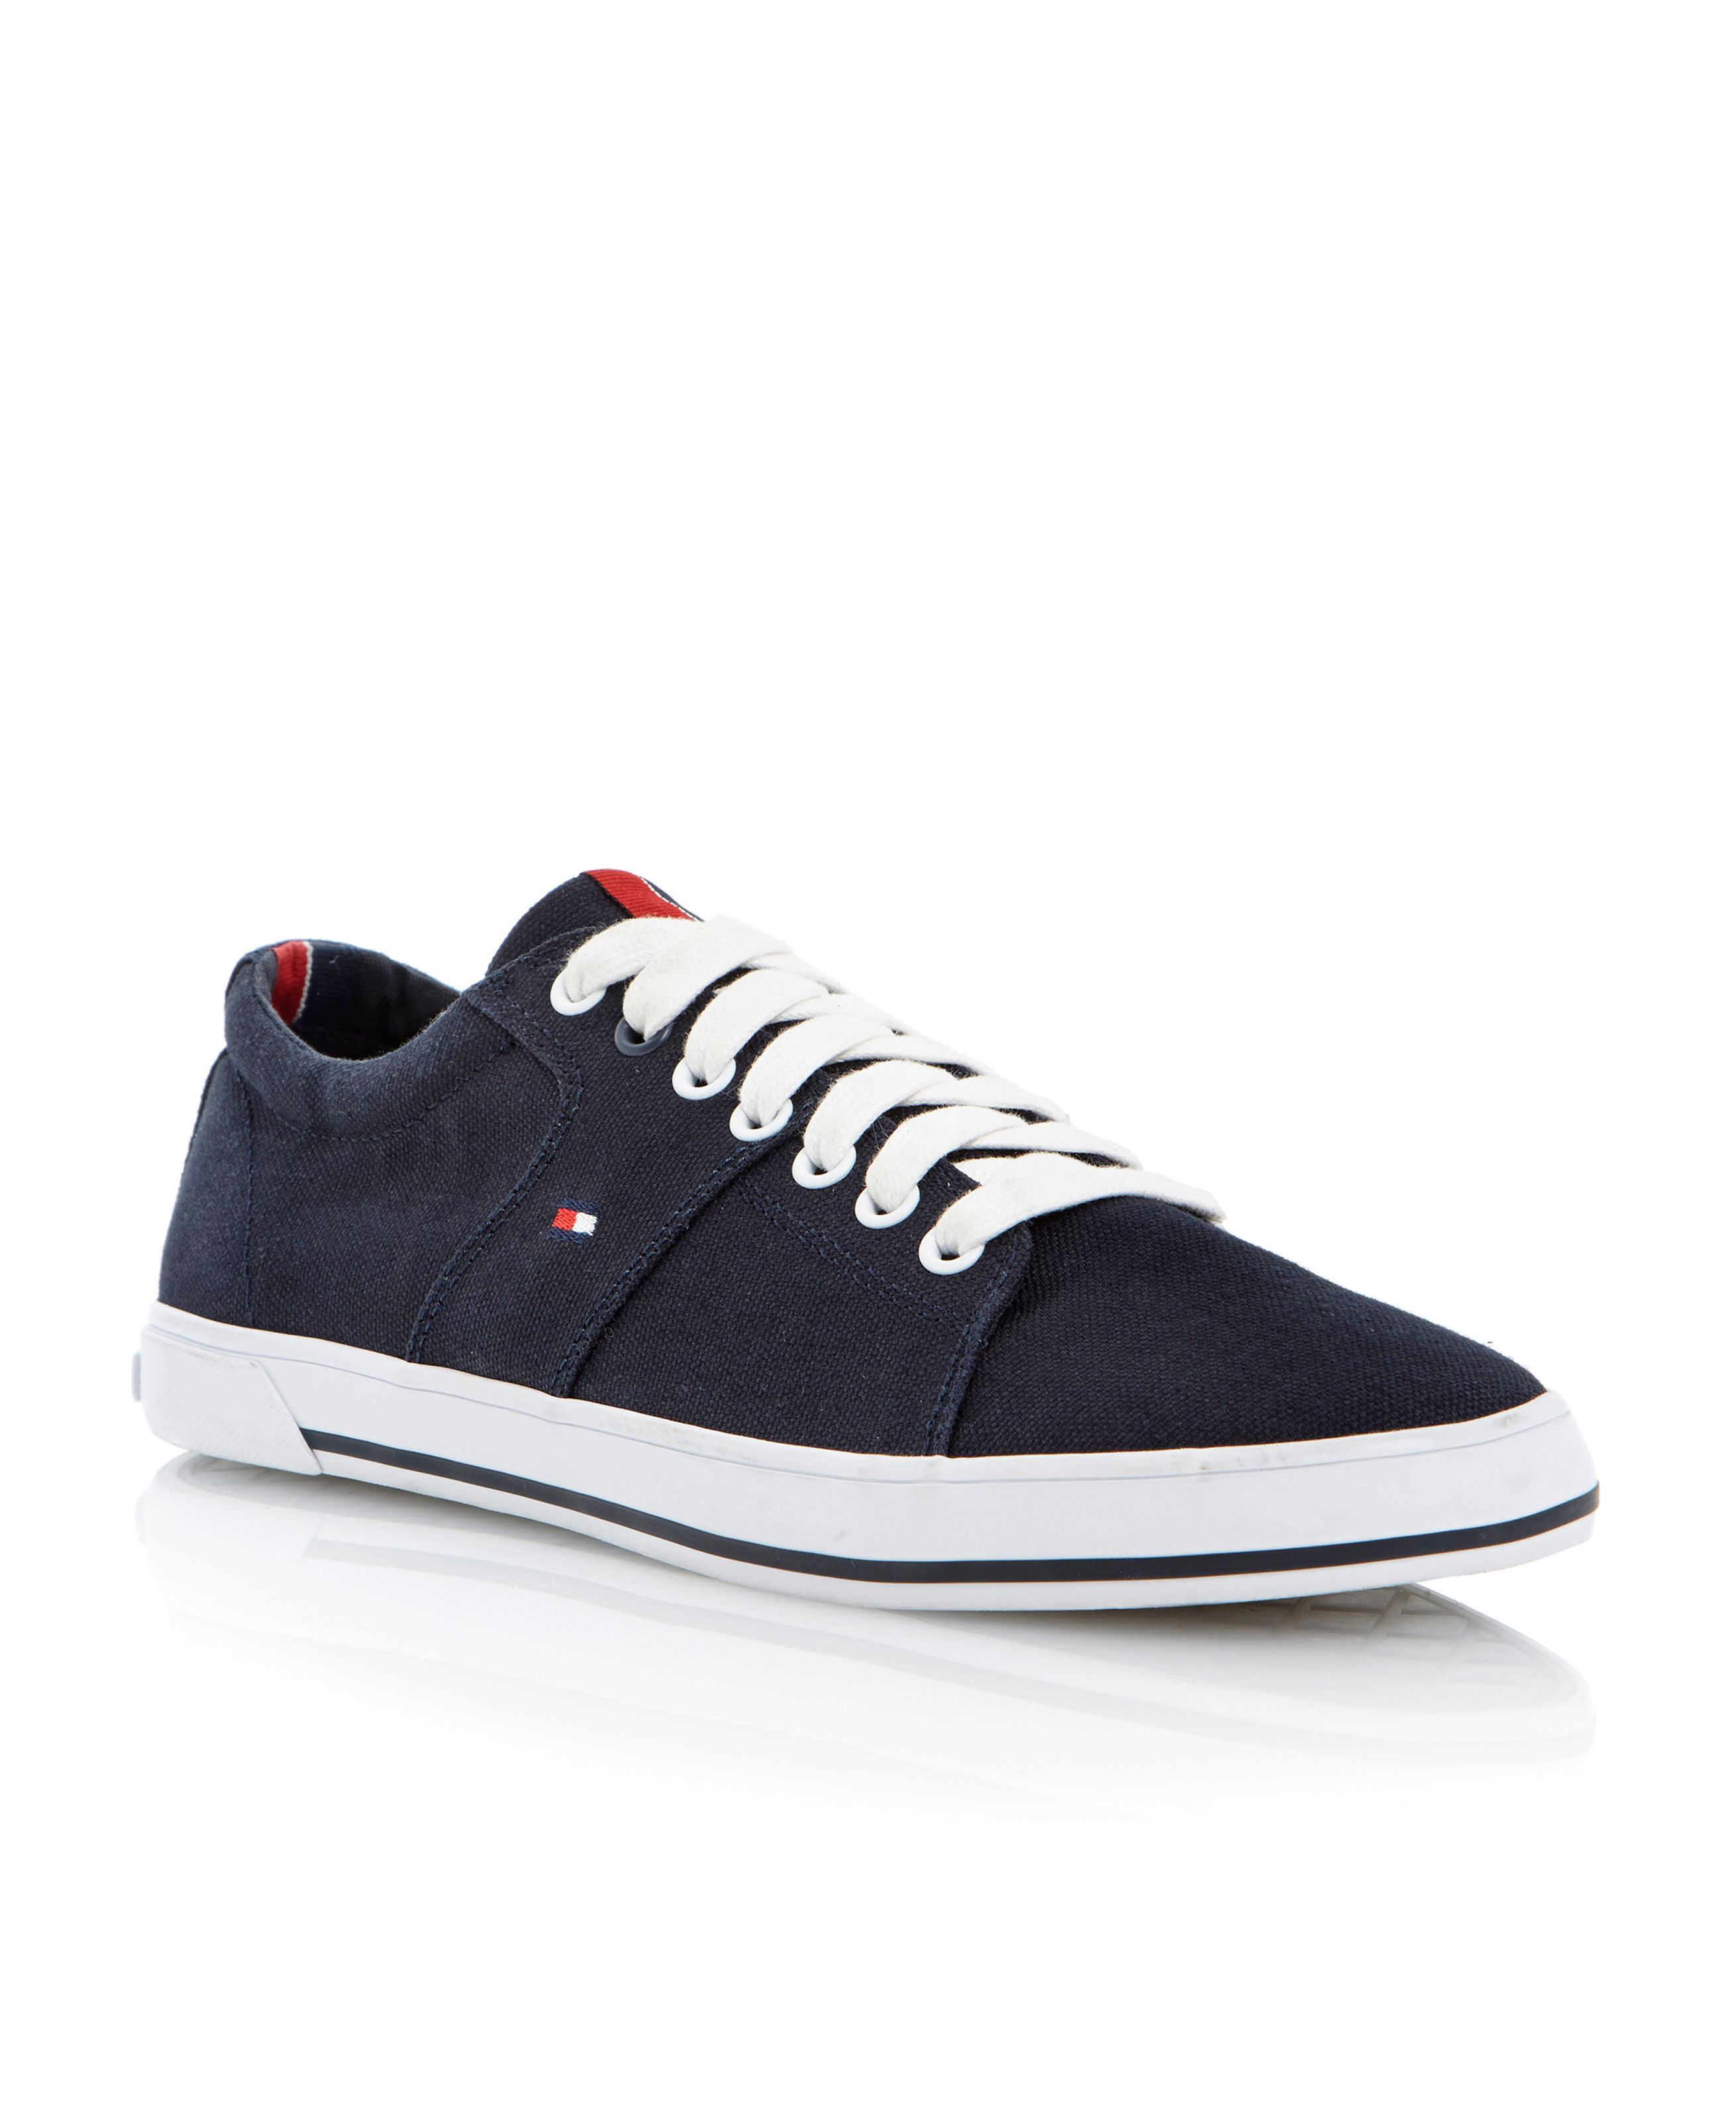 Harry 5d lace up trainers